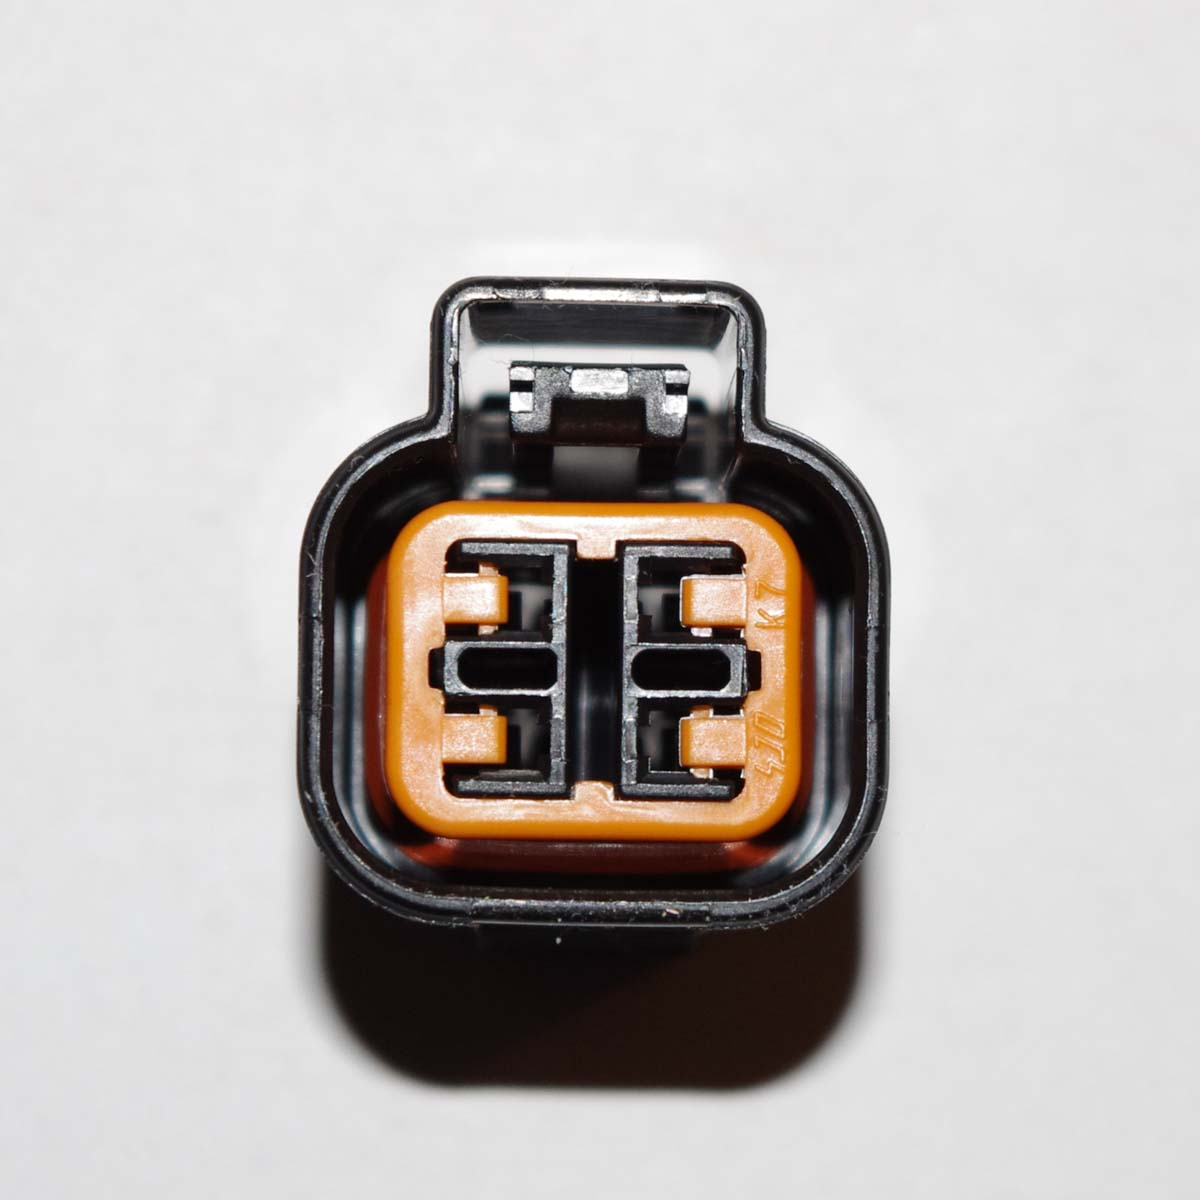 Sheridan Engineering NMWP4F-B Connector: Mitsubishi Eclipse 1990 TPS, Eclipse 1990-1999 Cruise Control, Eclipse 1995-1999 Front O2 Sensor